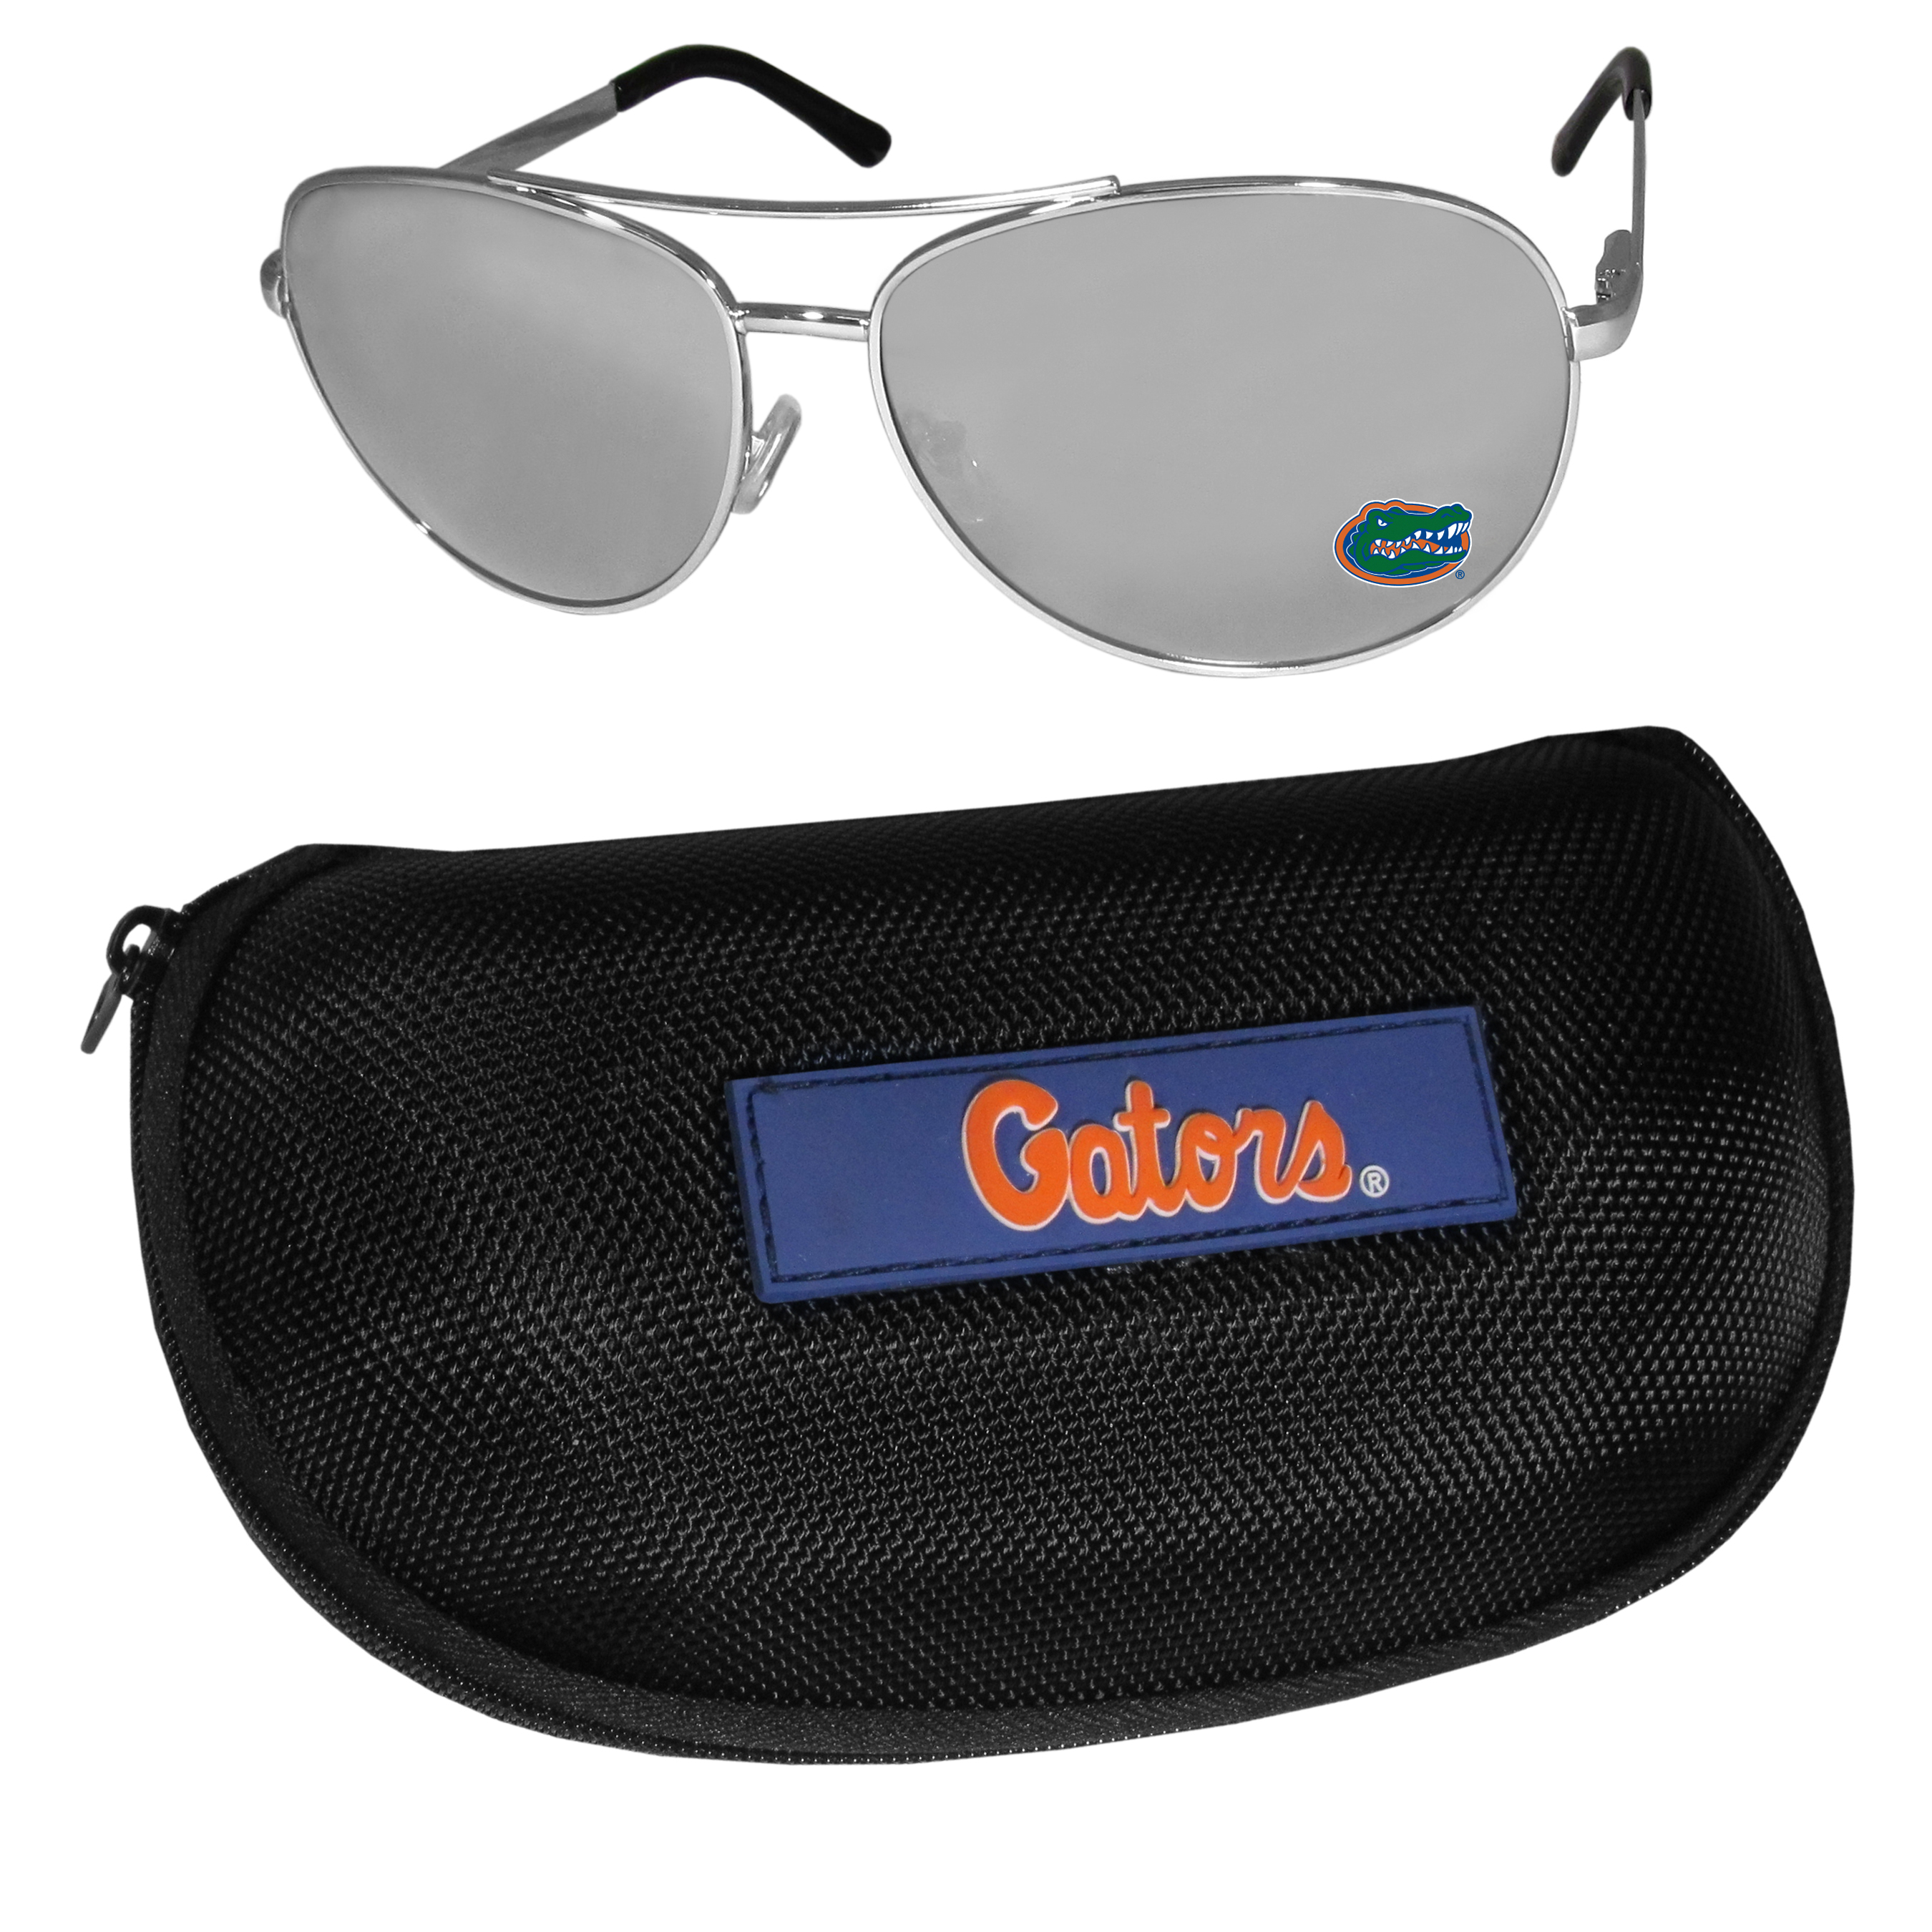 Florida Gators Aviator Sunglasses and Zippered Carrying Case - Aviator sunglasses are truly an iconic retro fashion statement that never goes out-of-style. Our Florida Gators  aviator sunglasses pair this classic look with your love of the game. The iridium coated lenses reduce glare while driving, boating, golfing and their 100% UVA/UVB rating provides you with the maximum UV protection for all your outdoor activities. A millennial favorite, these affordable designer frames are the perfect eyewear accessory for a sports fan that is looking for high-quality at an affordable price. The durable, flex hinged frames are tough enough for hiking and camping or if you prefer sun bathing by the pool or on the beach these shades will really stand the test of time. The sunglasses come with a hard shell zippered case which has a large team logo on the lid that will make even the most die-hard fan proud!